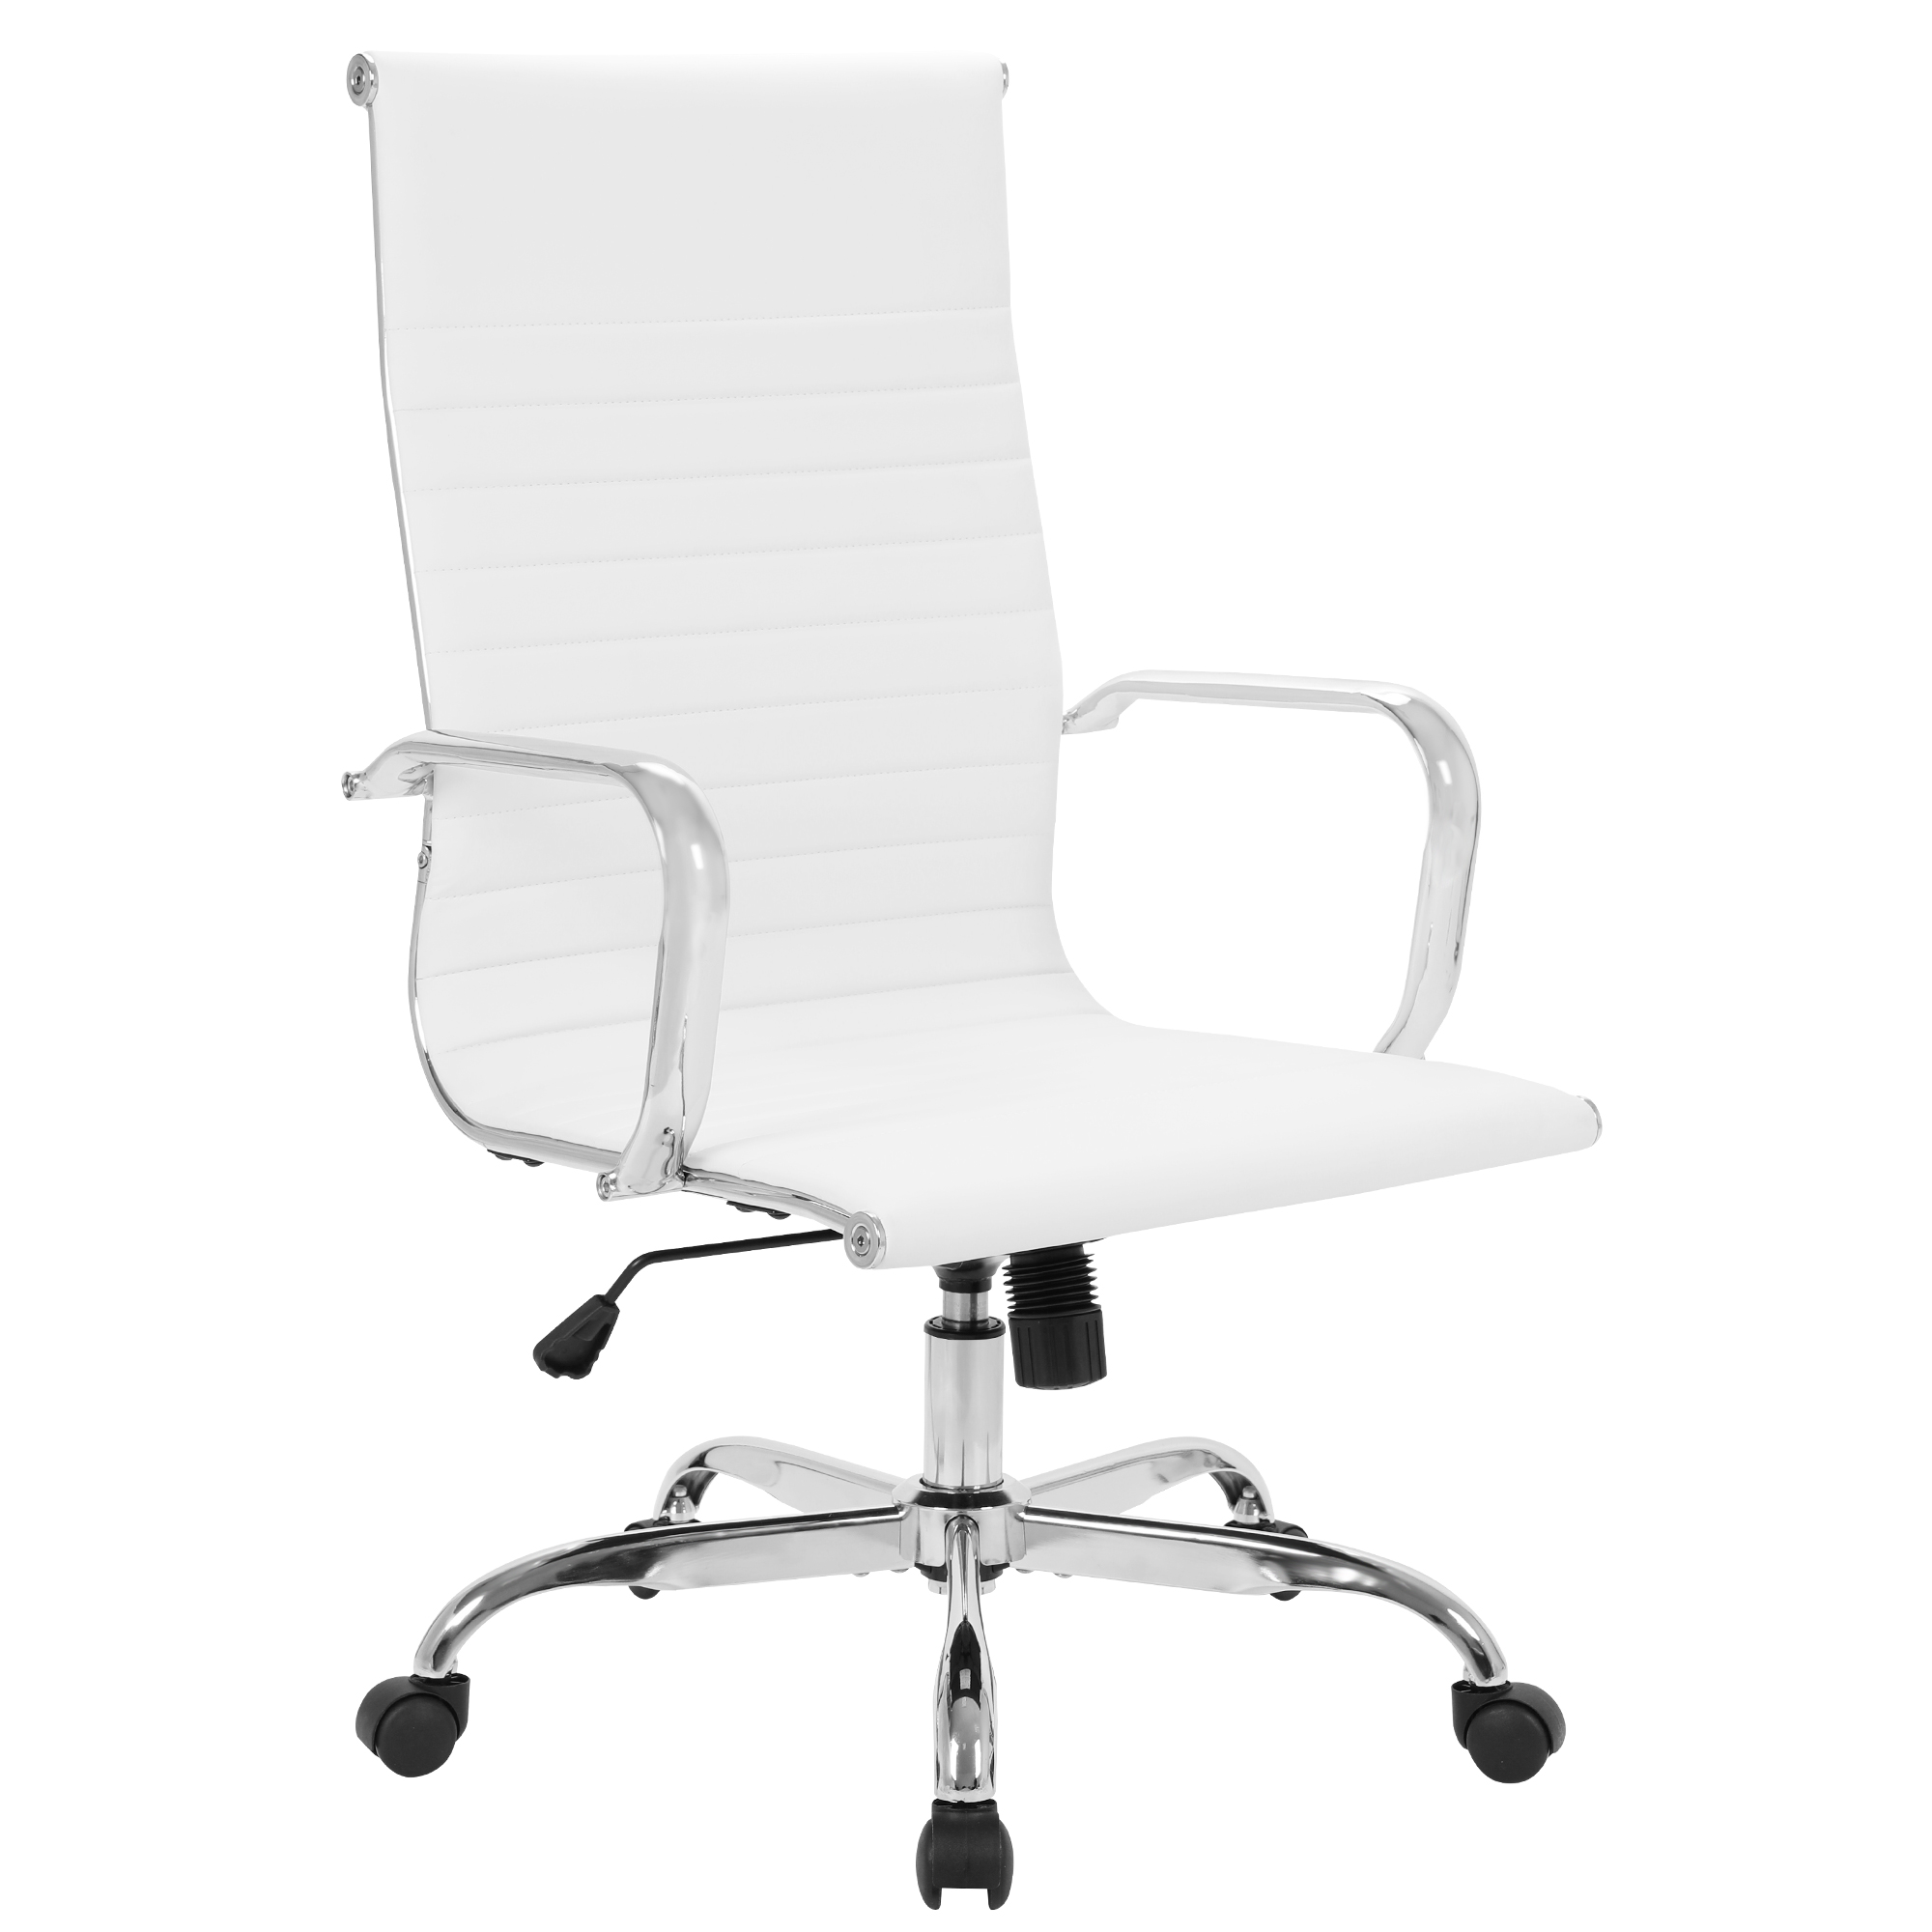 [US Direct] High Back Office Chair Home Desk Chair PU Leather White 9110HWHI W553